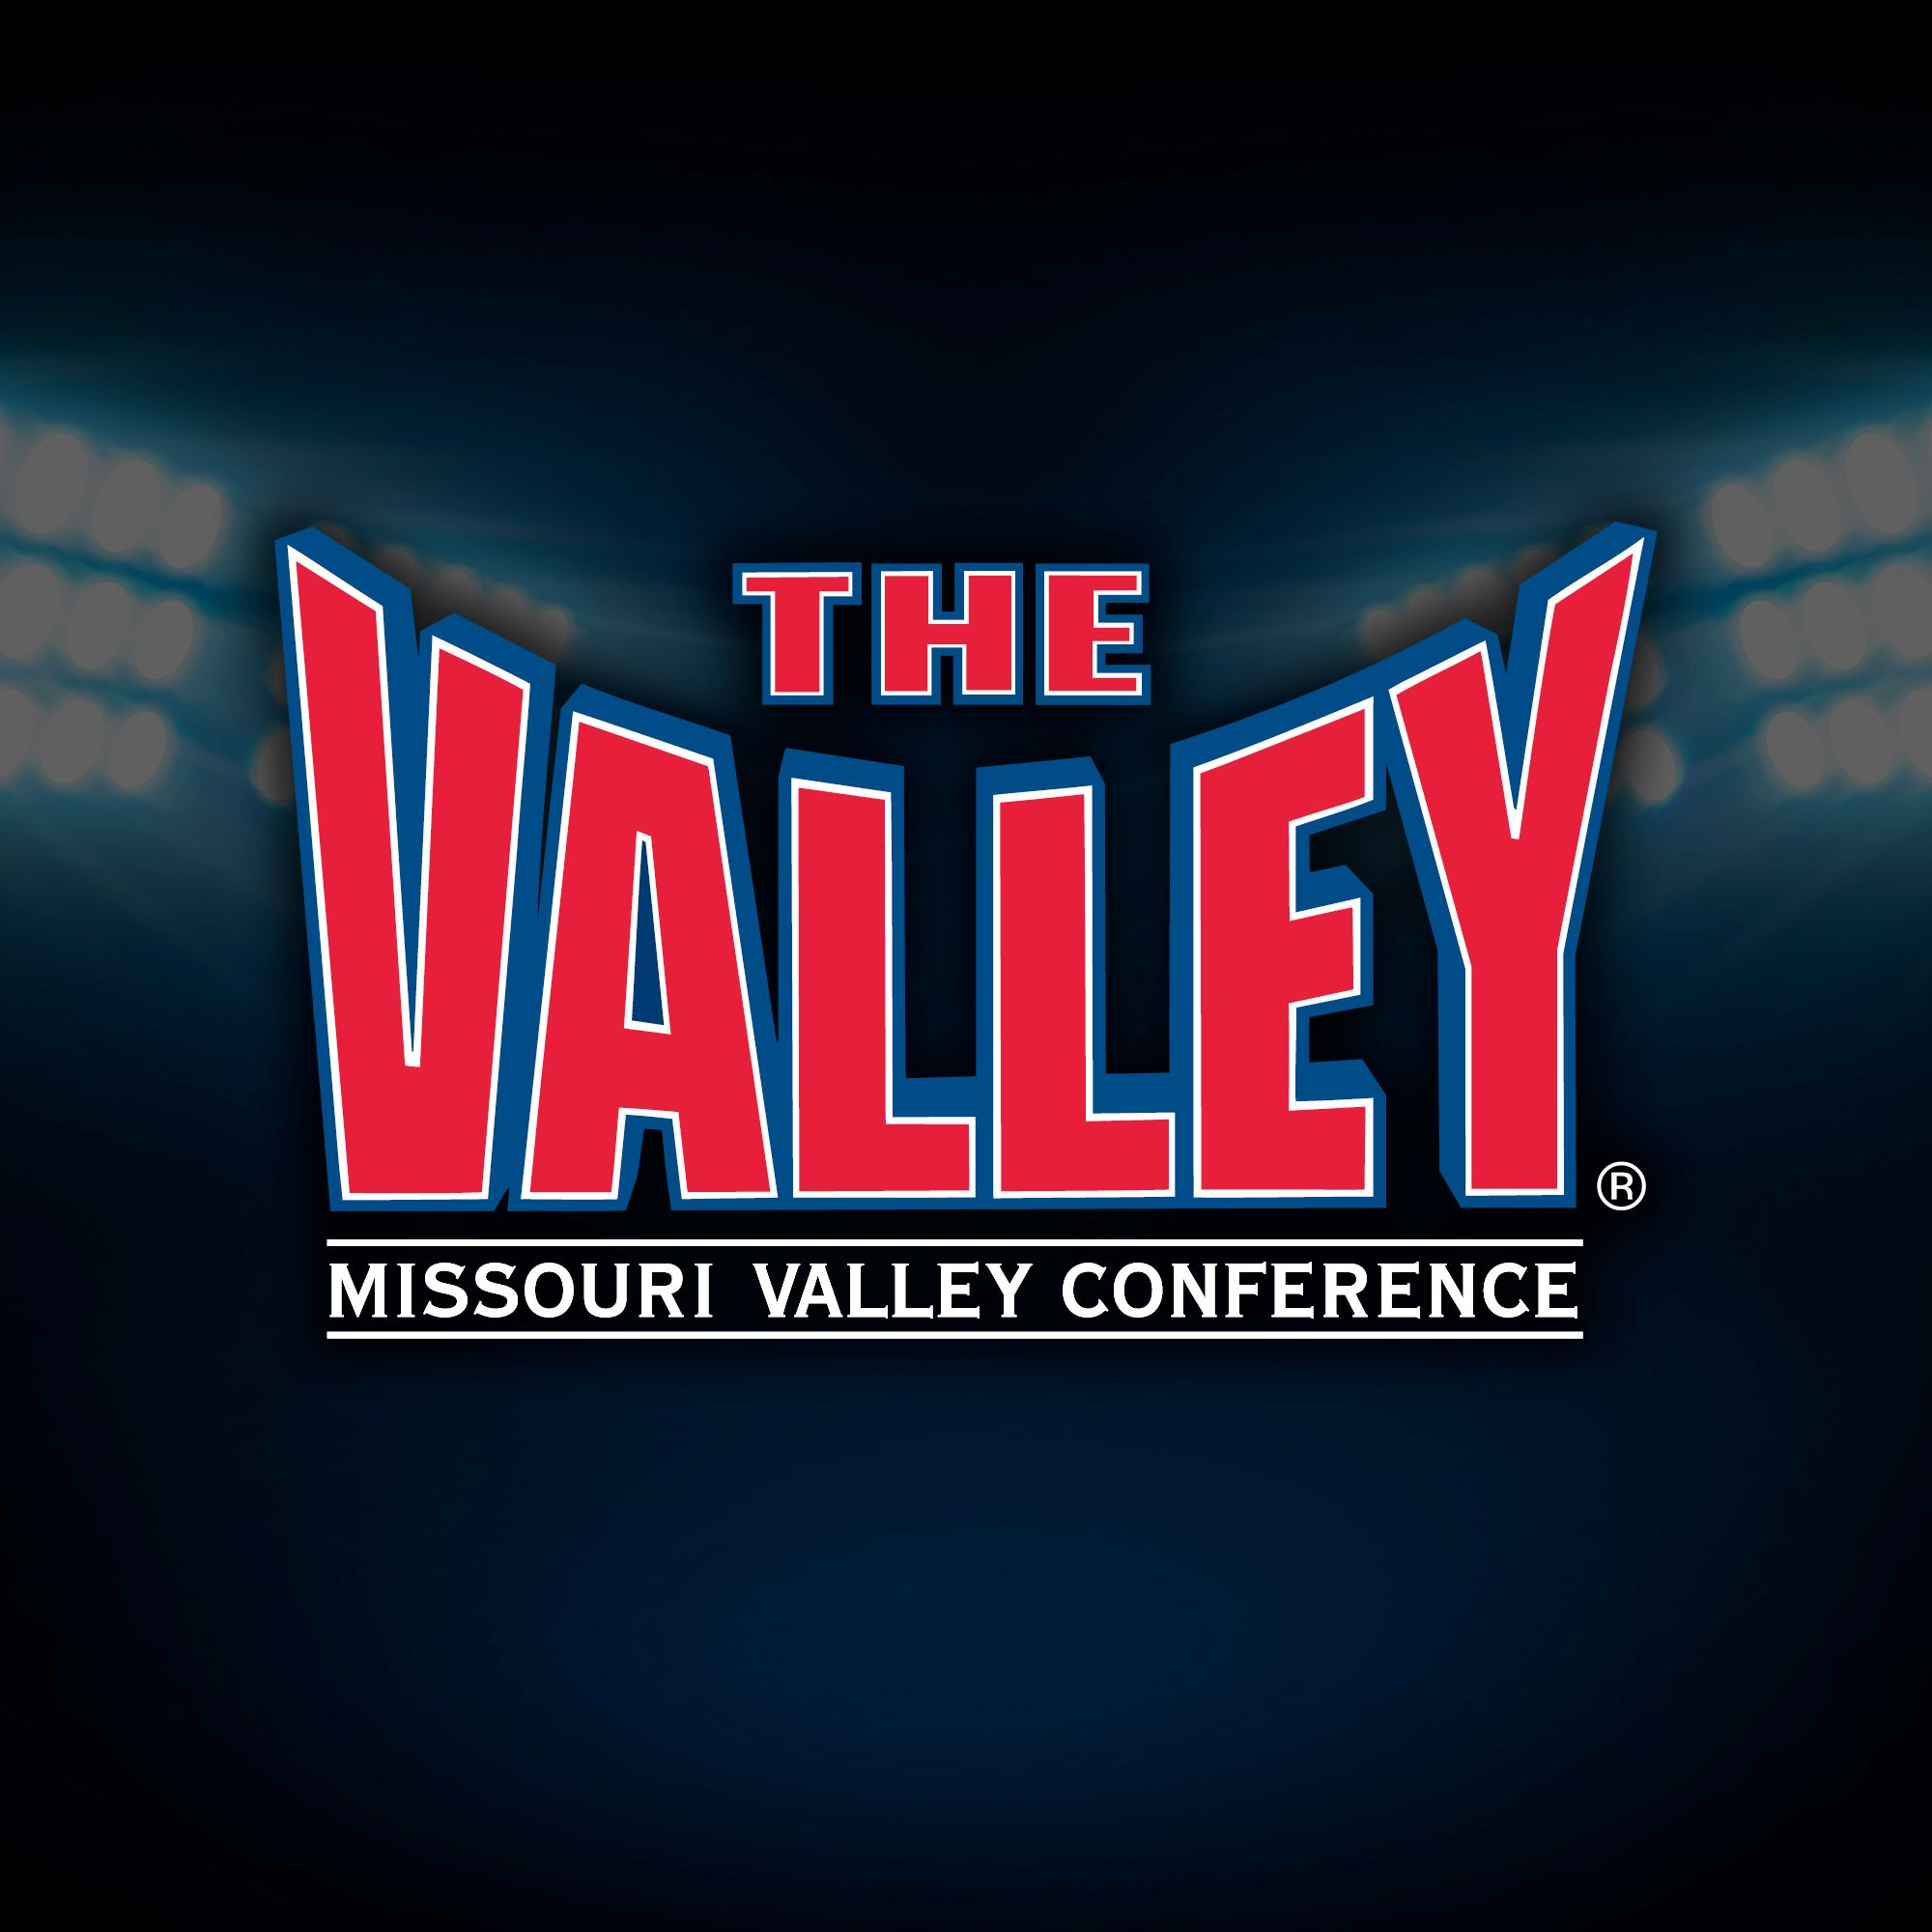 missouri valley buddhist single men Valparaiso university president mark a heckler, phd, announced today that the university has accepted an invitation to join the missouri valley conference on.